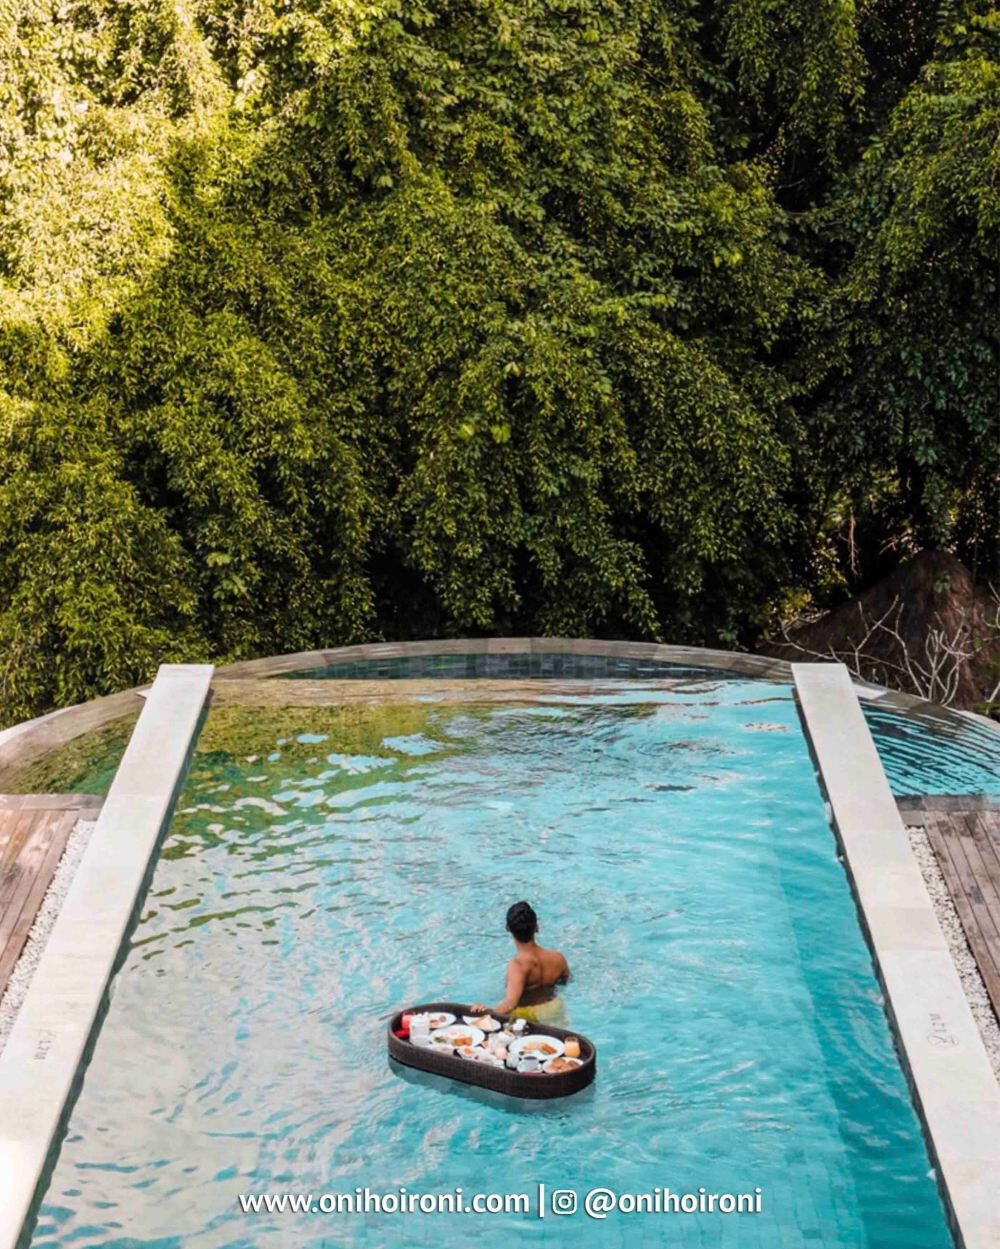 2 Floating breakfast di ubud sthala ubud bali